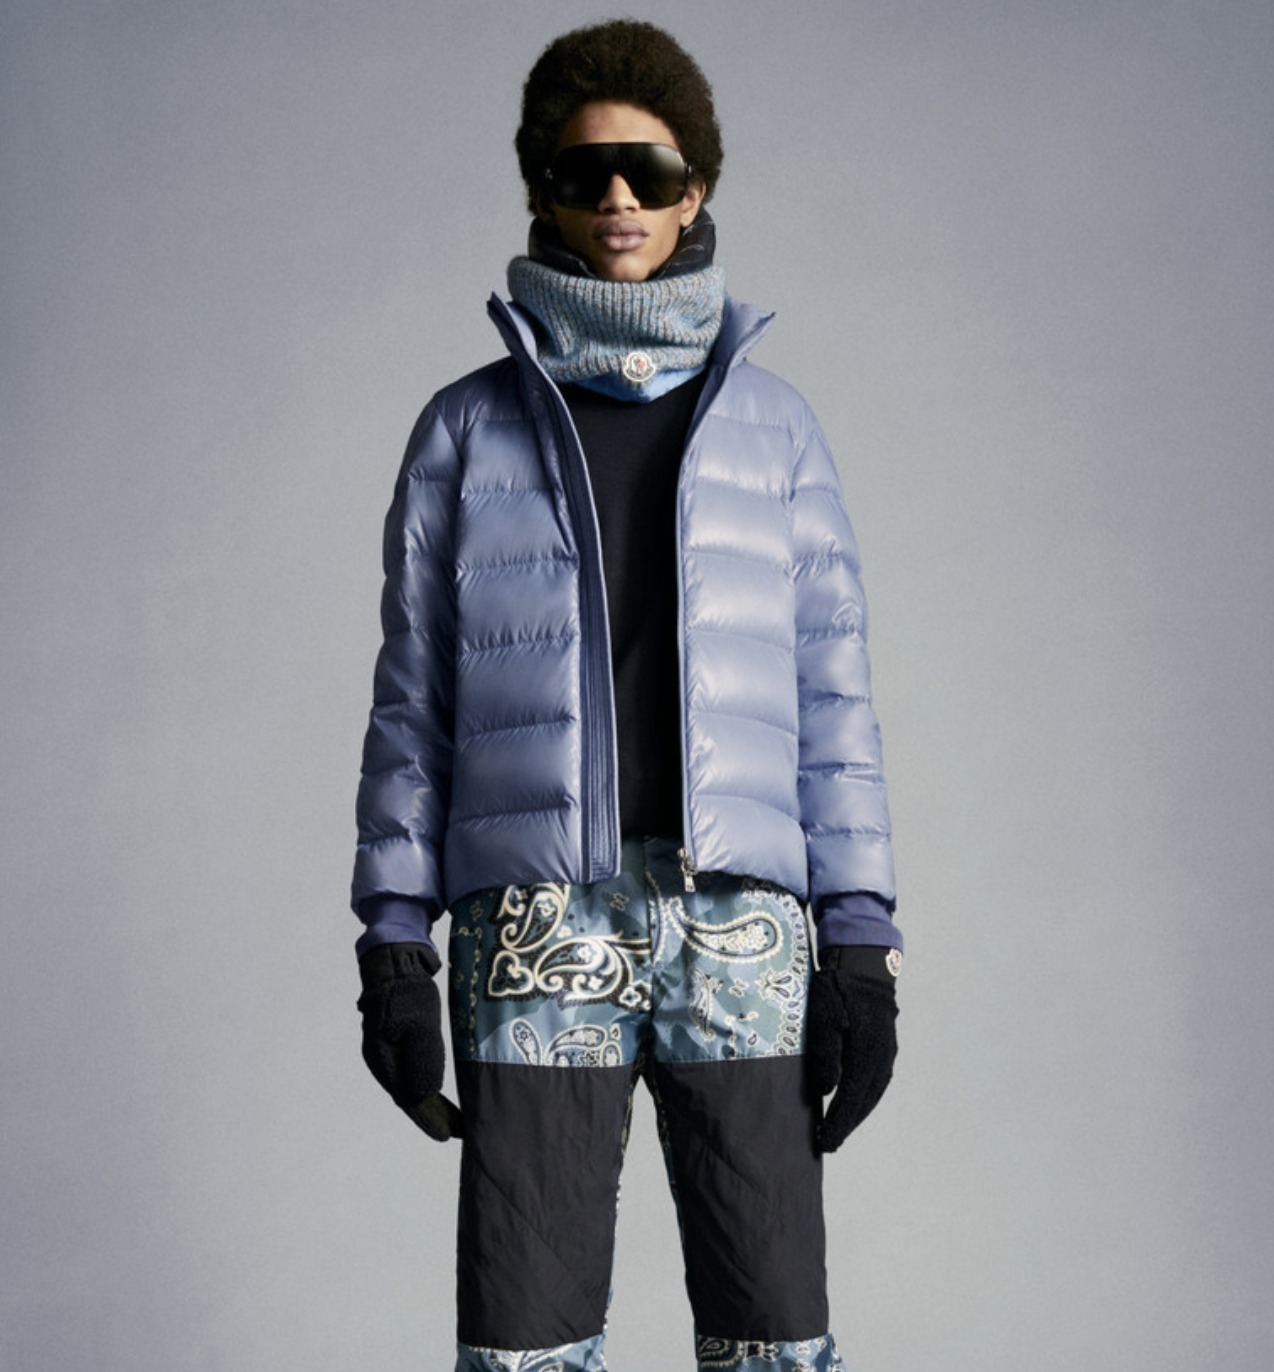 【MONCLER】 モンクレール Cuvellier (MONCLER/ダウンジャケット) 70319320